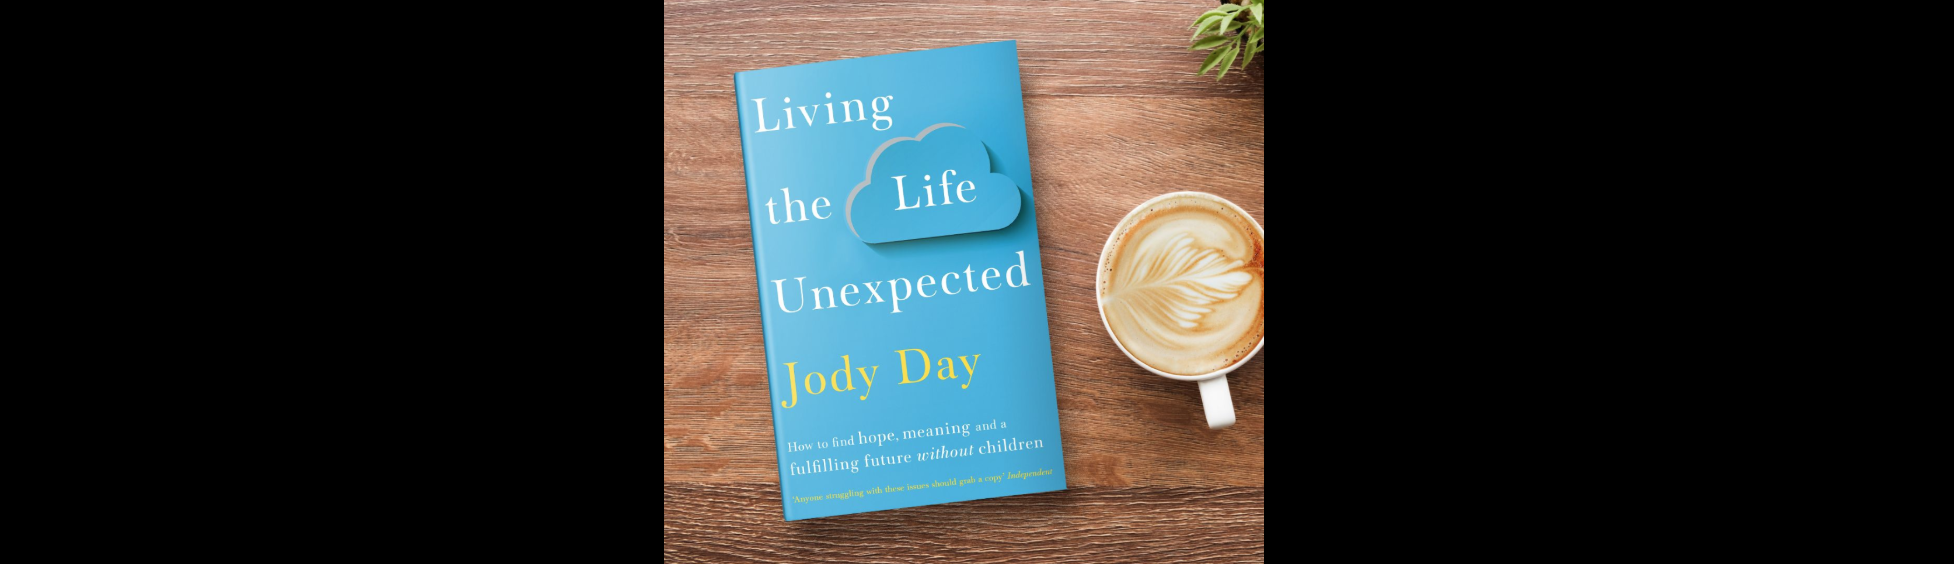 win a free, signed copy of 'Living the Life Unexpected' by Jody Day